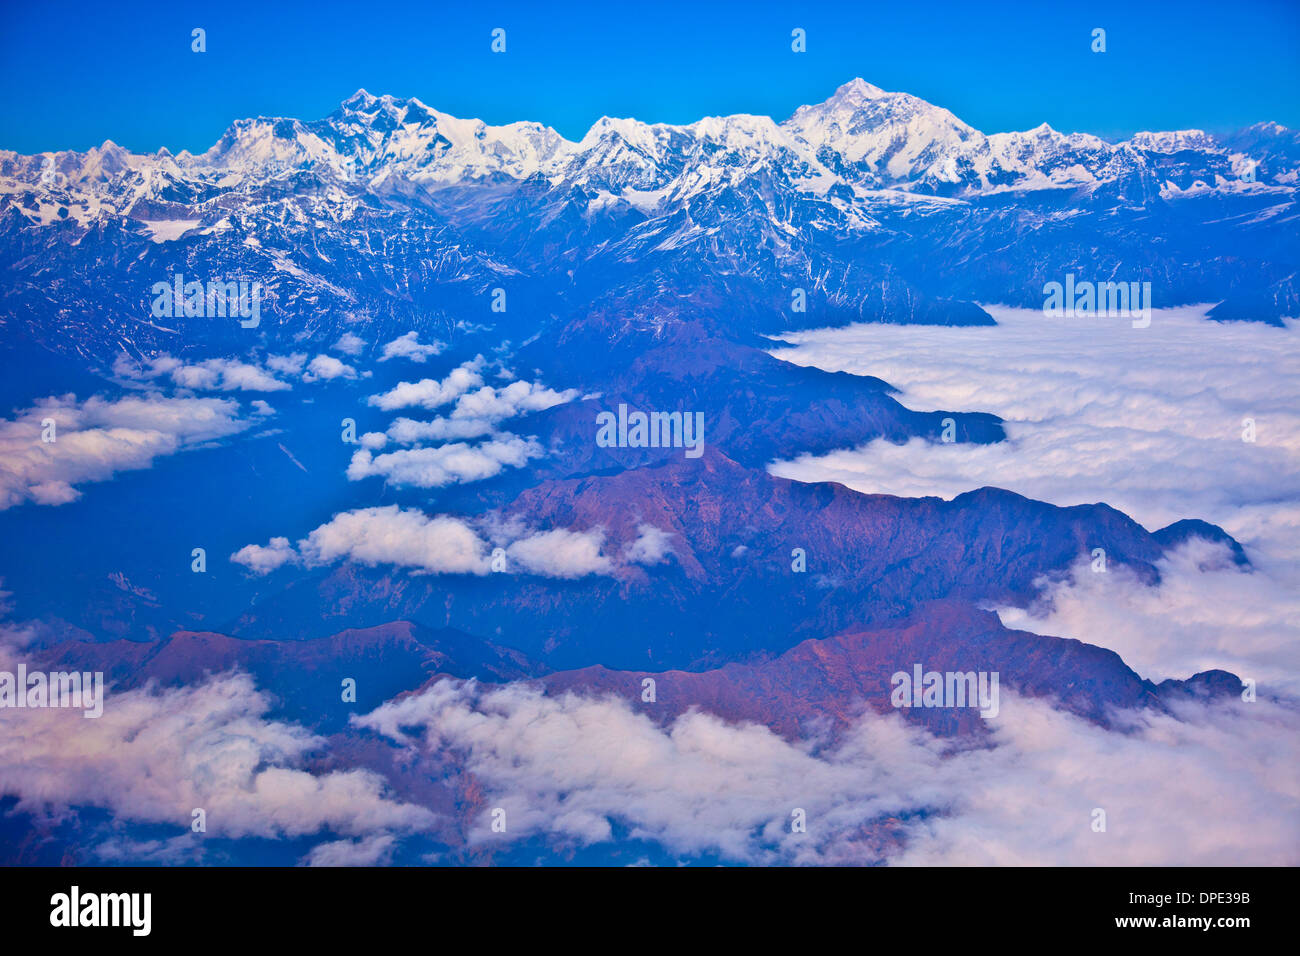 Mt. Everest and surrounding peaks, Sagamatha National Park, Nepal. World's highest mountain, Himalaya Mountains - Stock Image